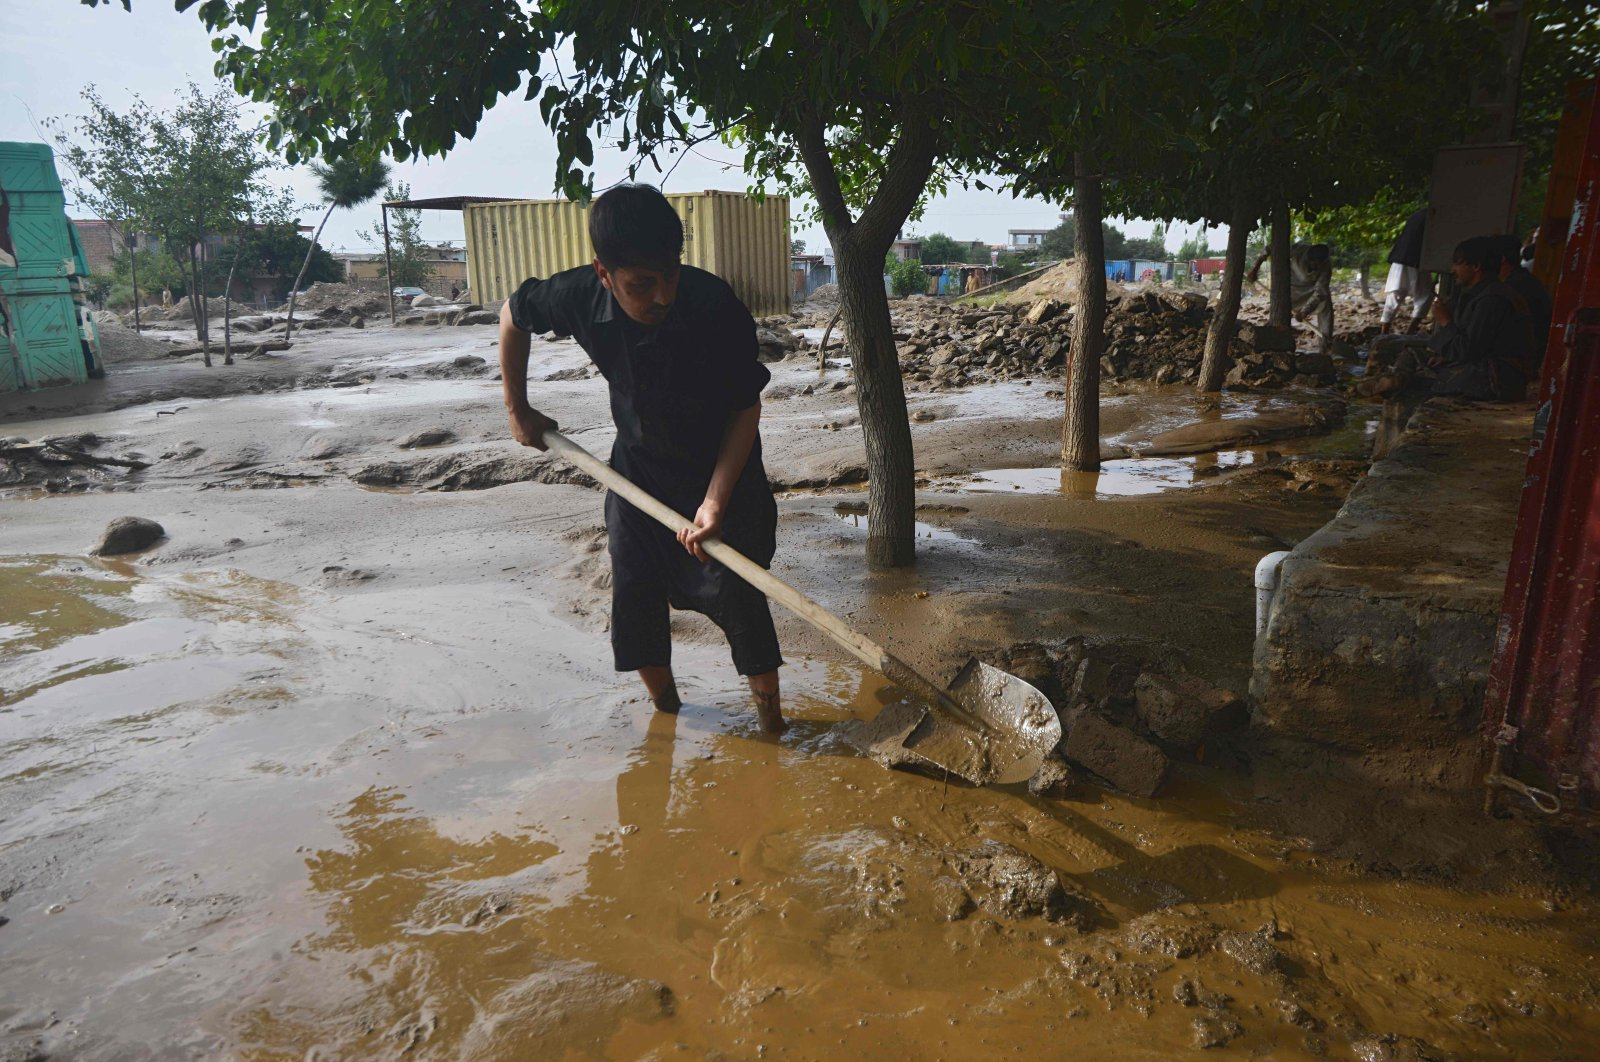 A flash flood-affected villager uses a shovel to clear the mud after heavy rains at Charikar in Parwan province on Aug. 26, 2020. (AFP Photo)